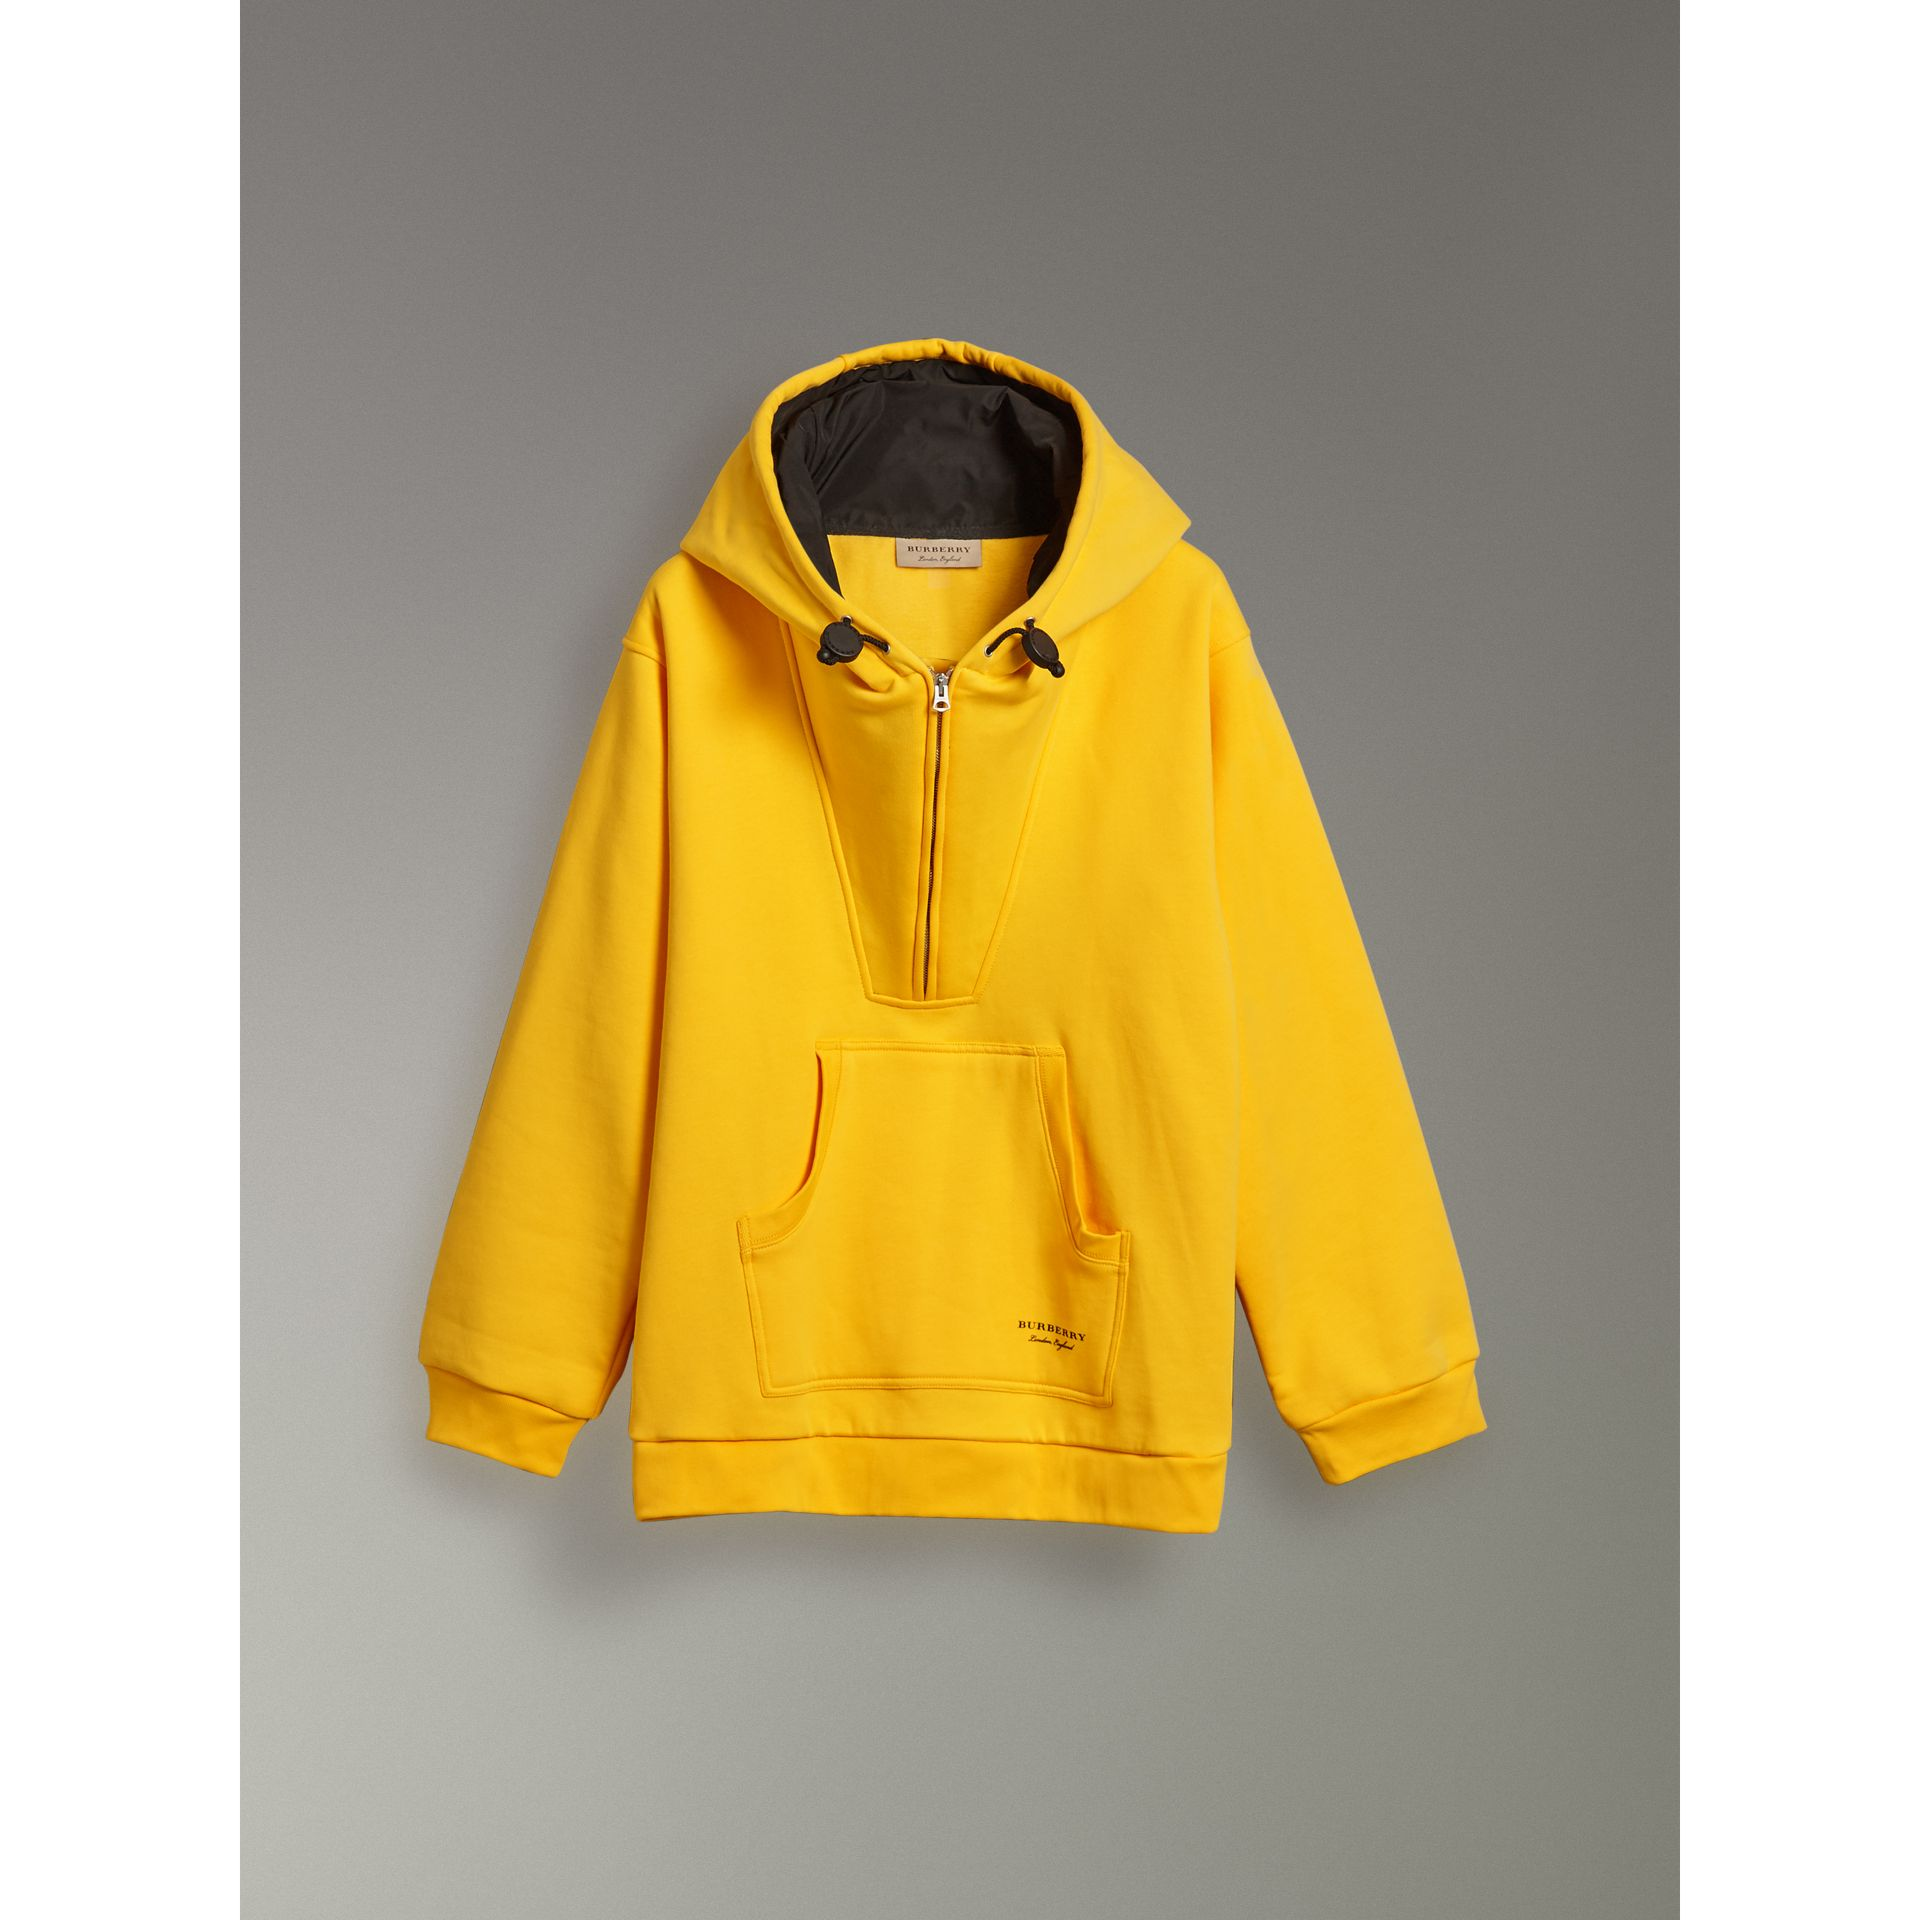 Oversized Sweatshirt Half-zip Hoodie in Bright Yellow - Men | Burberry - gallery image 3